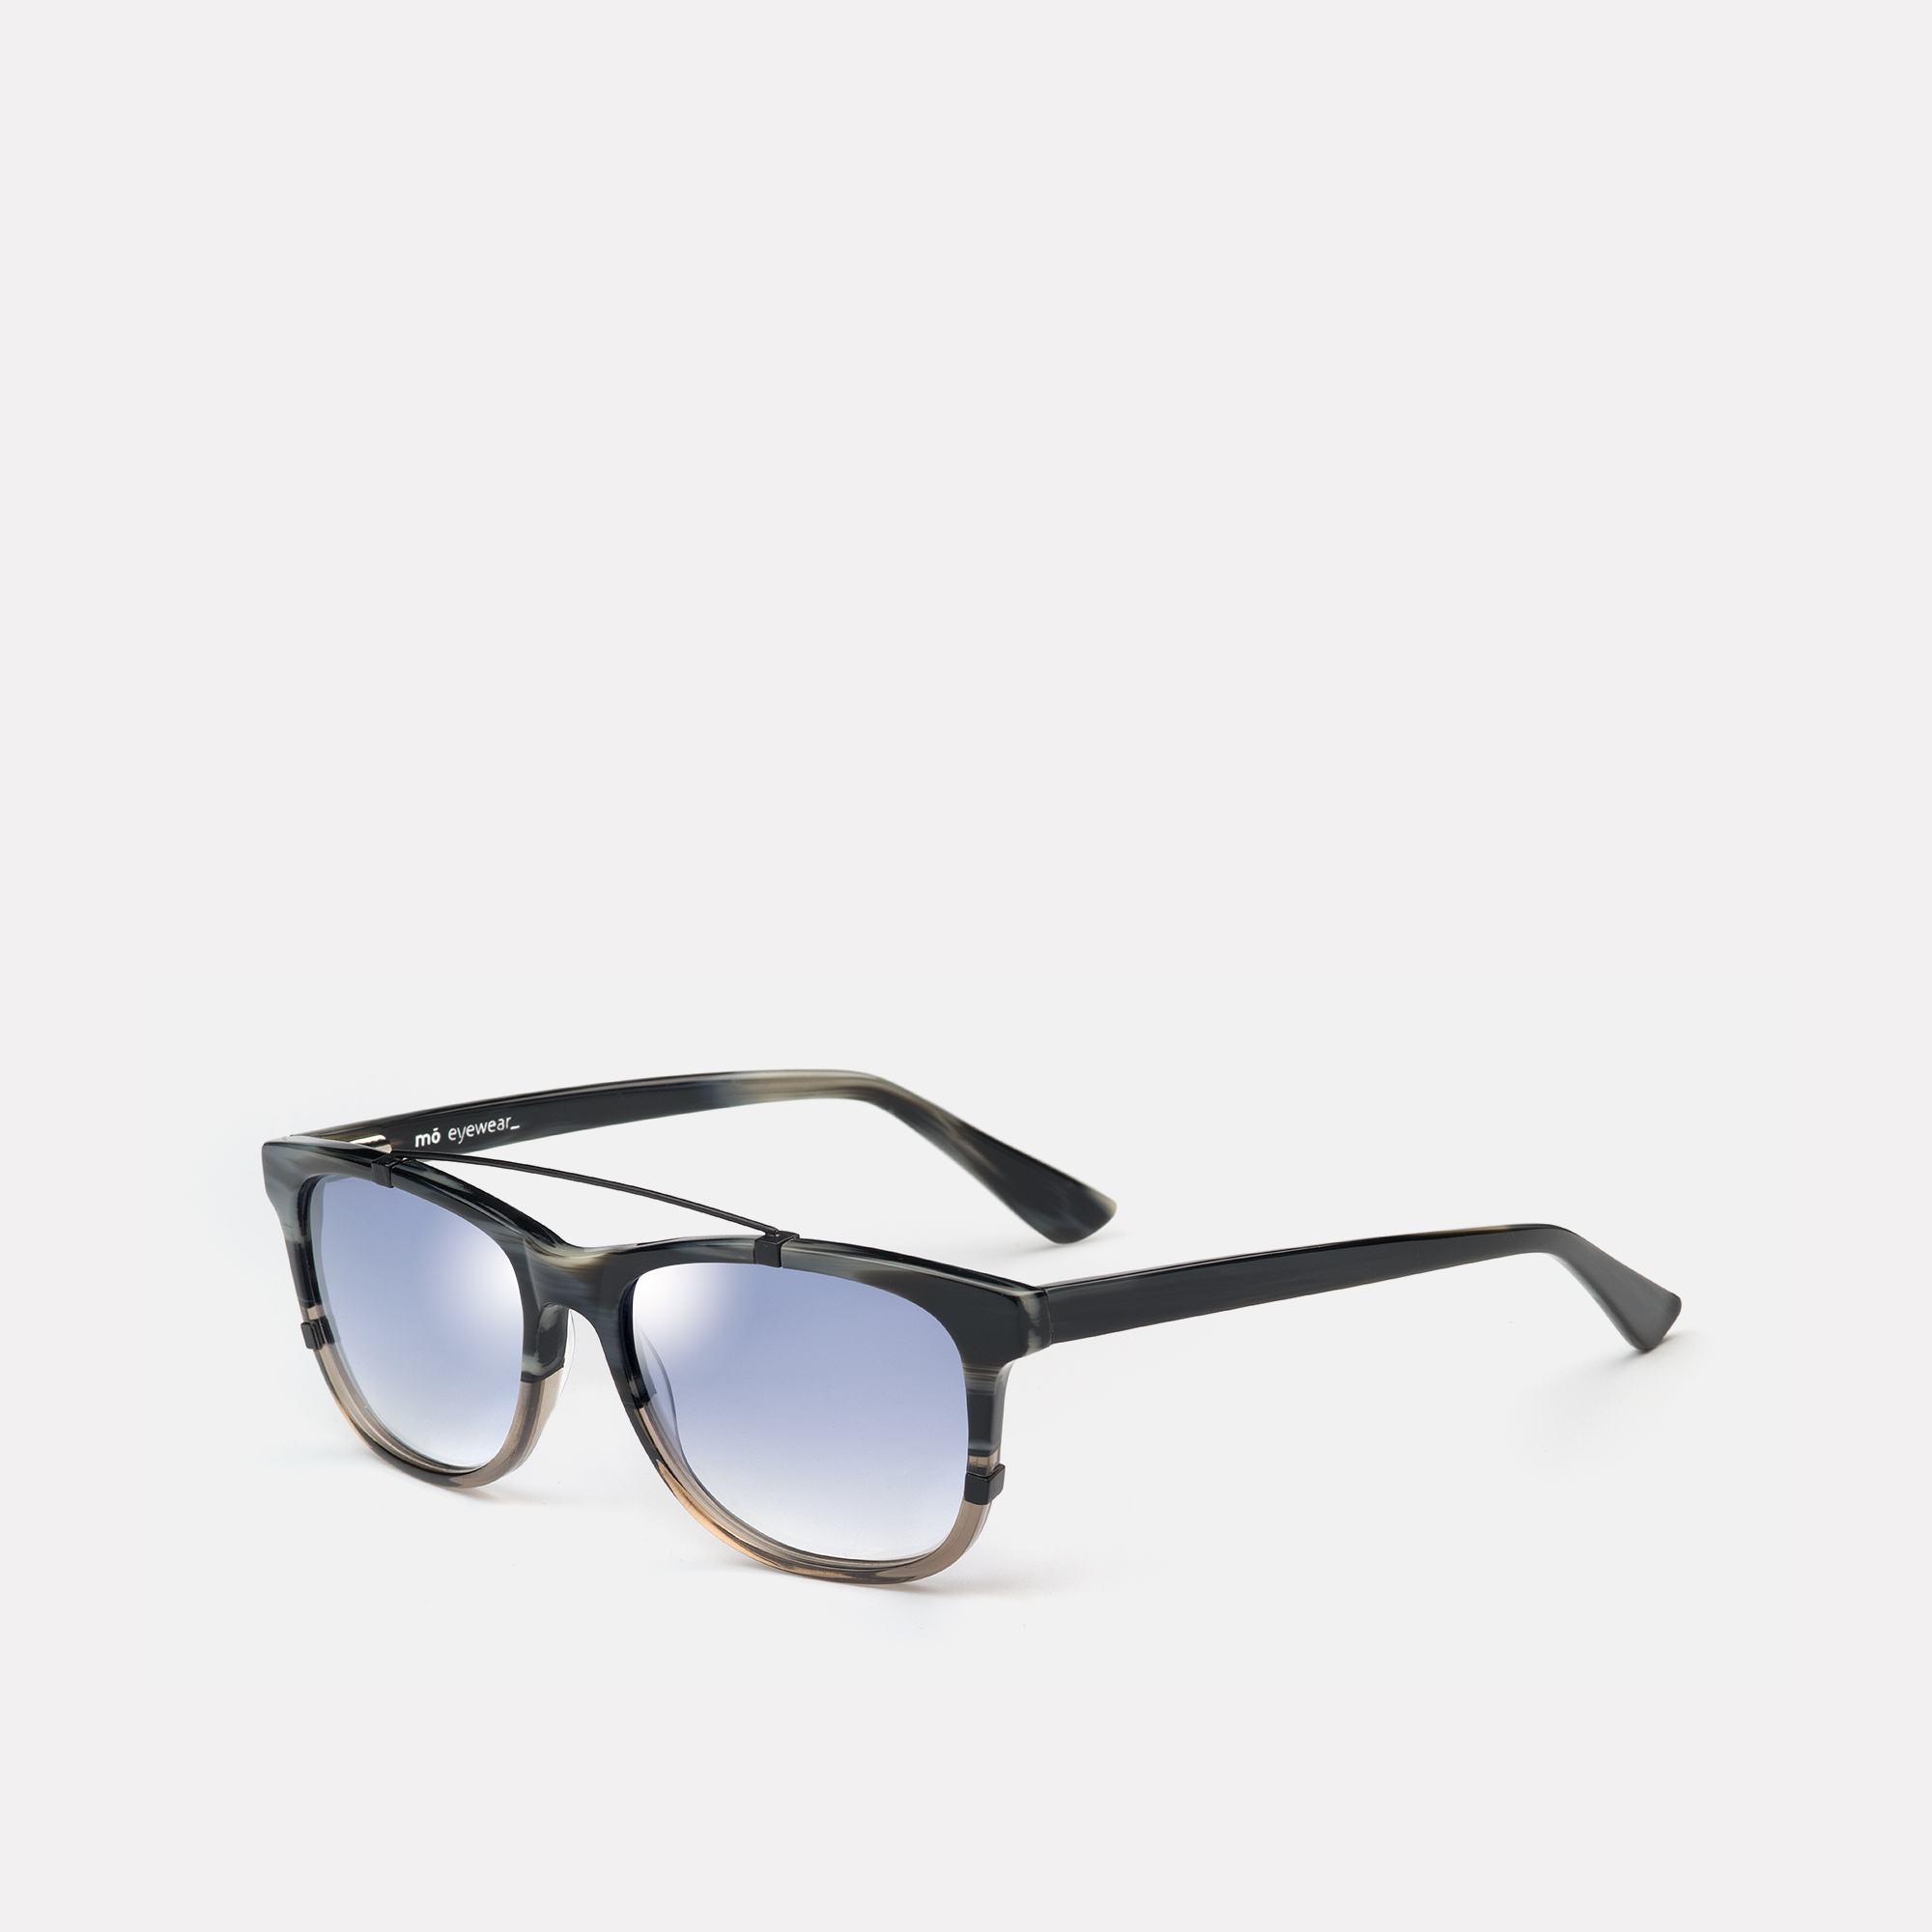 mó sun geek 37A A, black-grey, hi-res